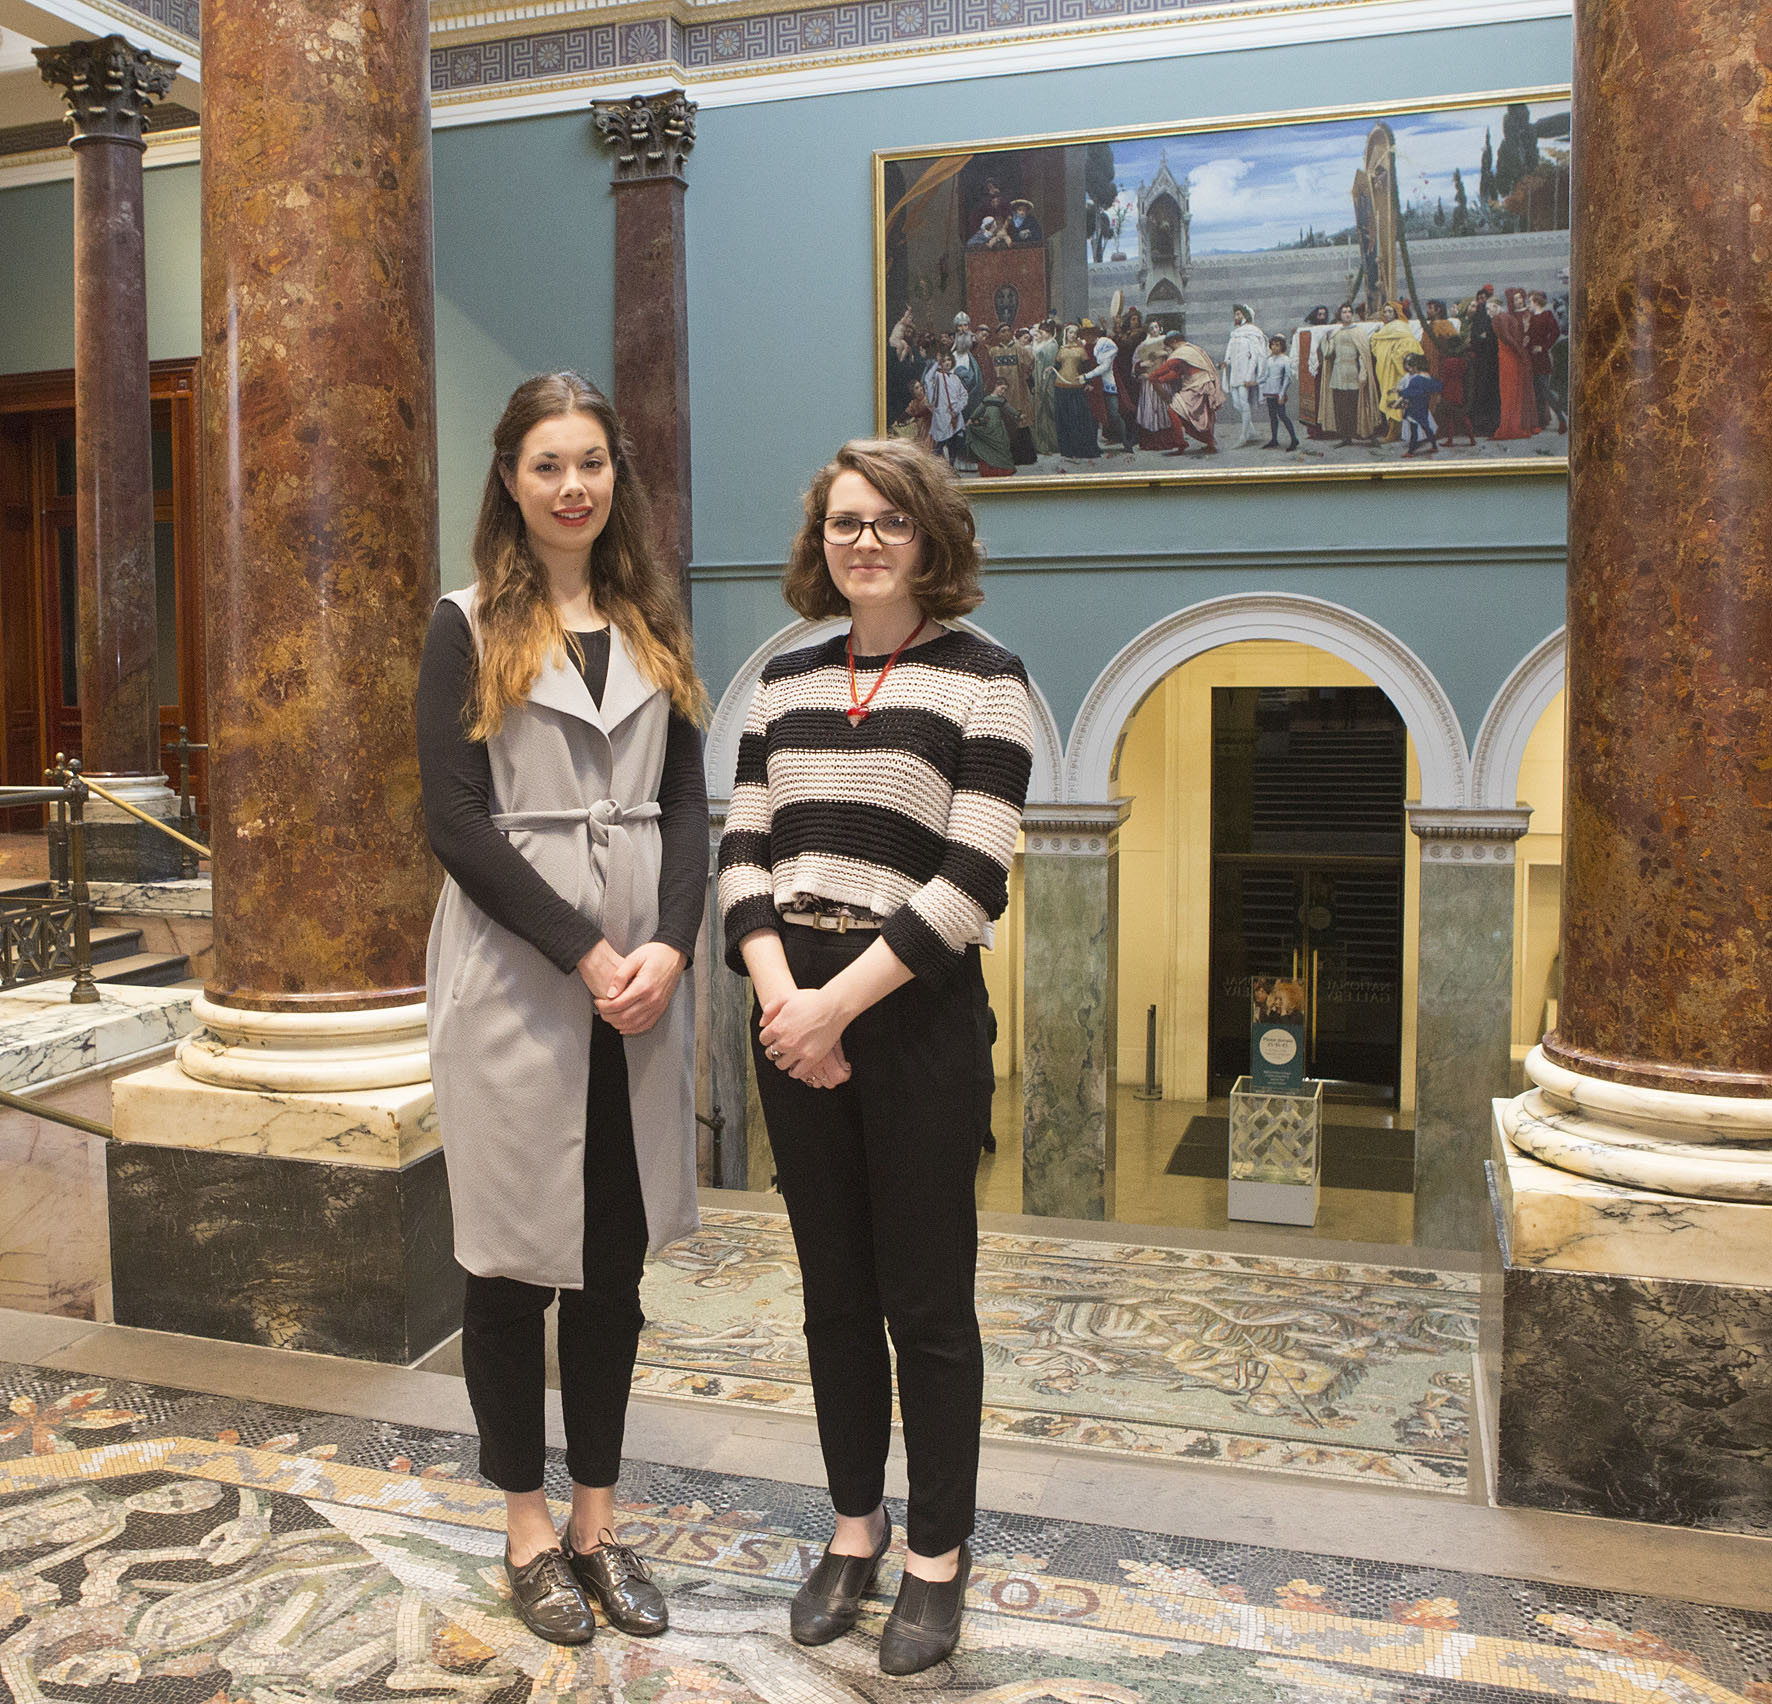 Lucy West and sylvie broussine, national gallery curatorial trainees supported by the art fund with the assistance of the vivmar foundation